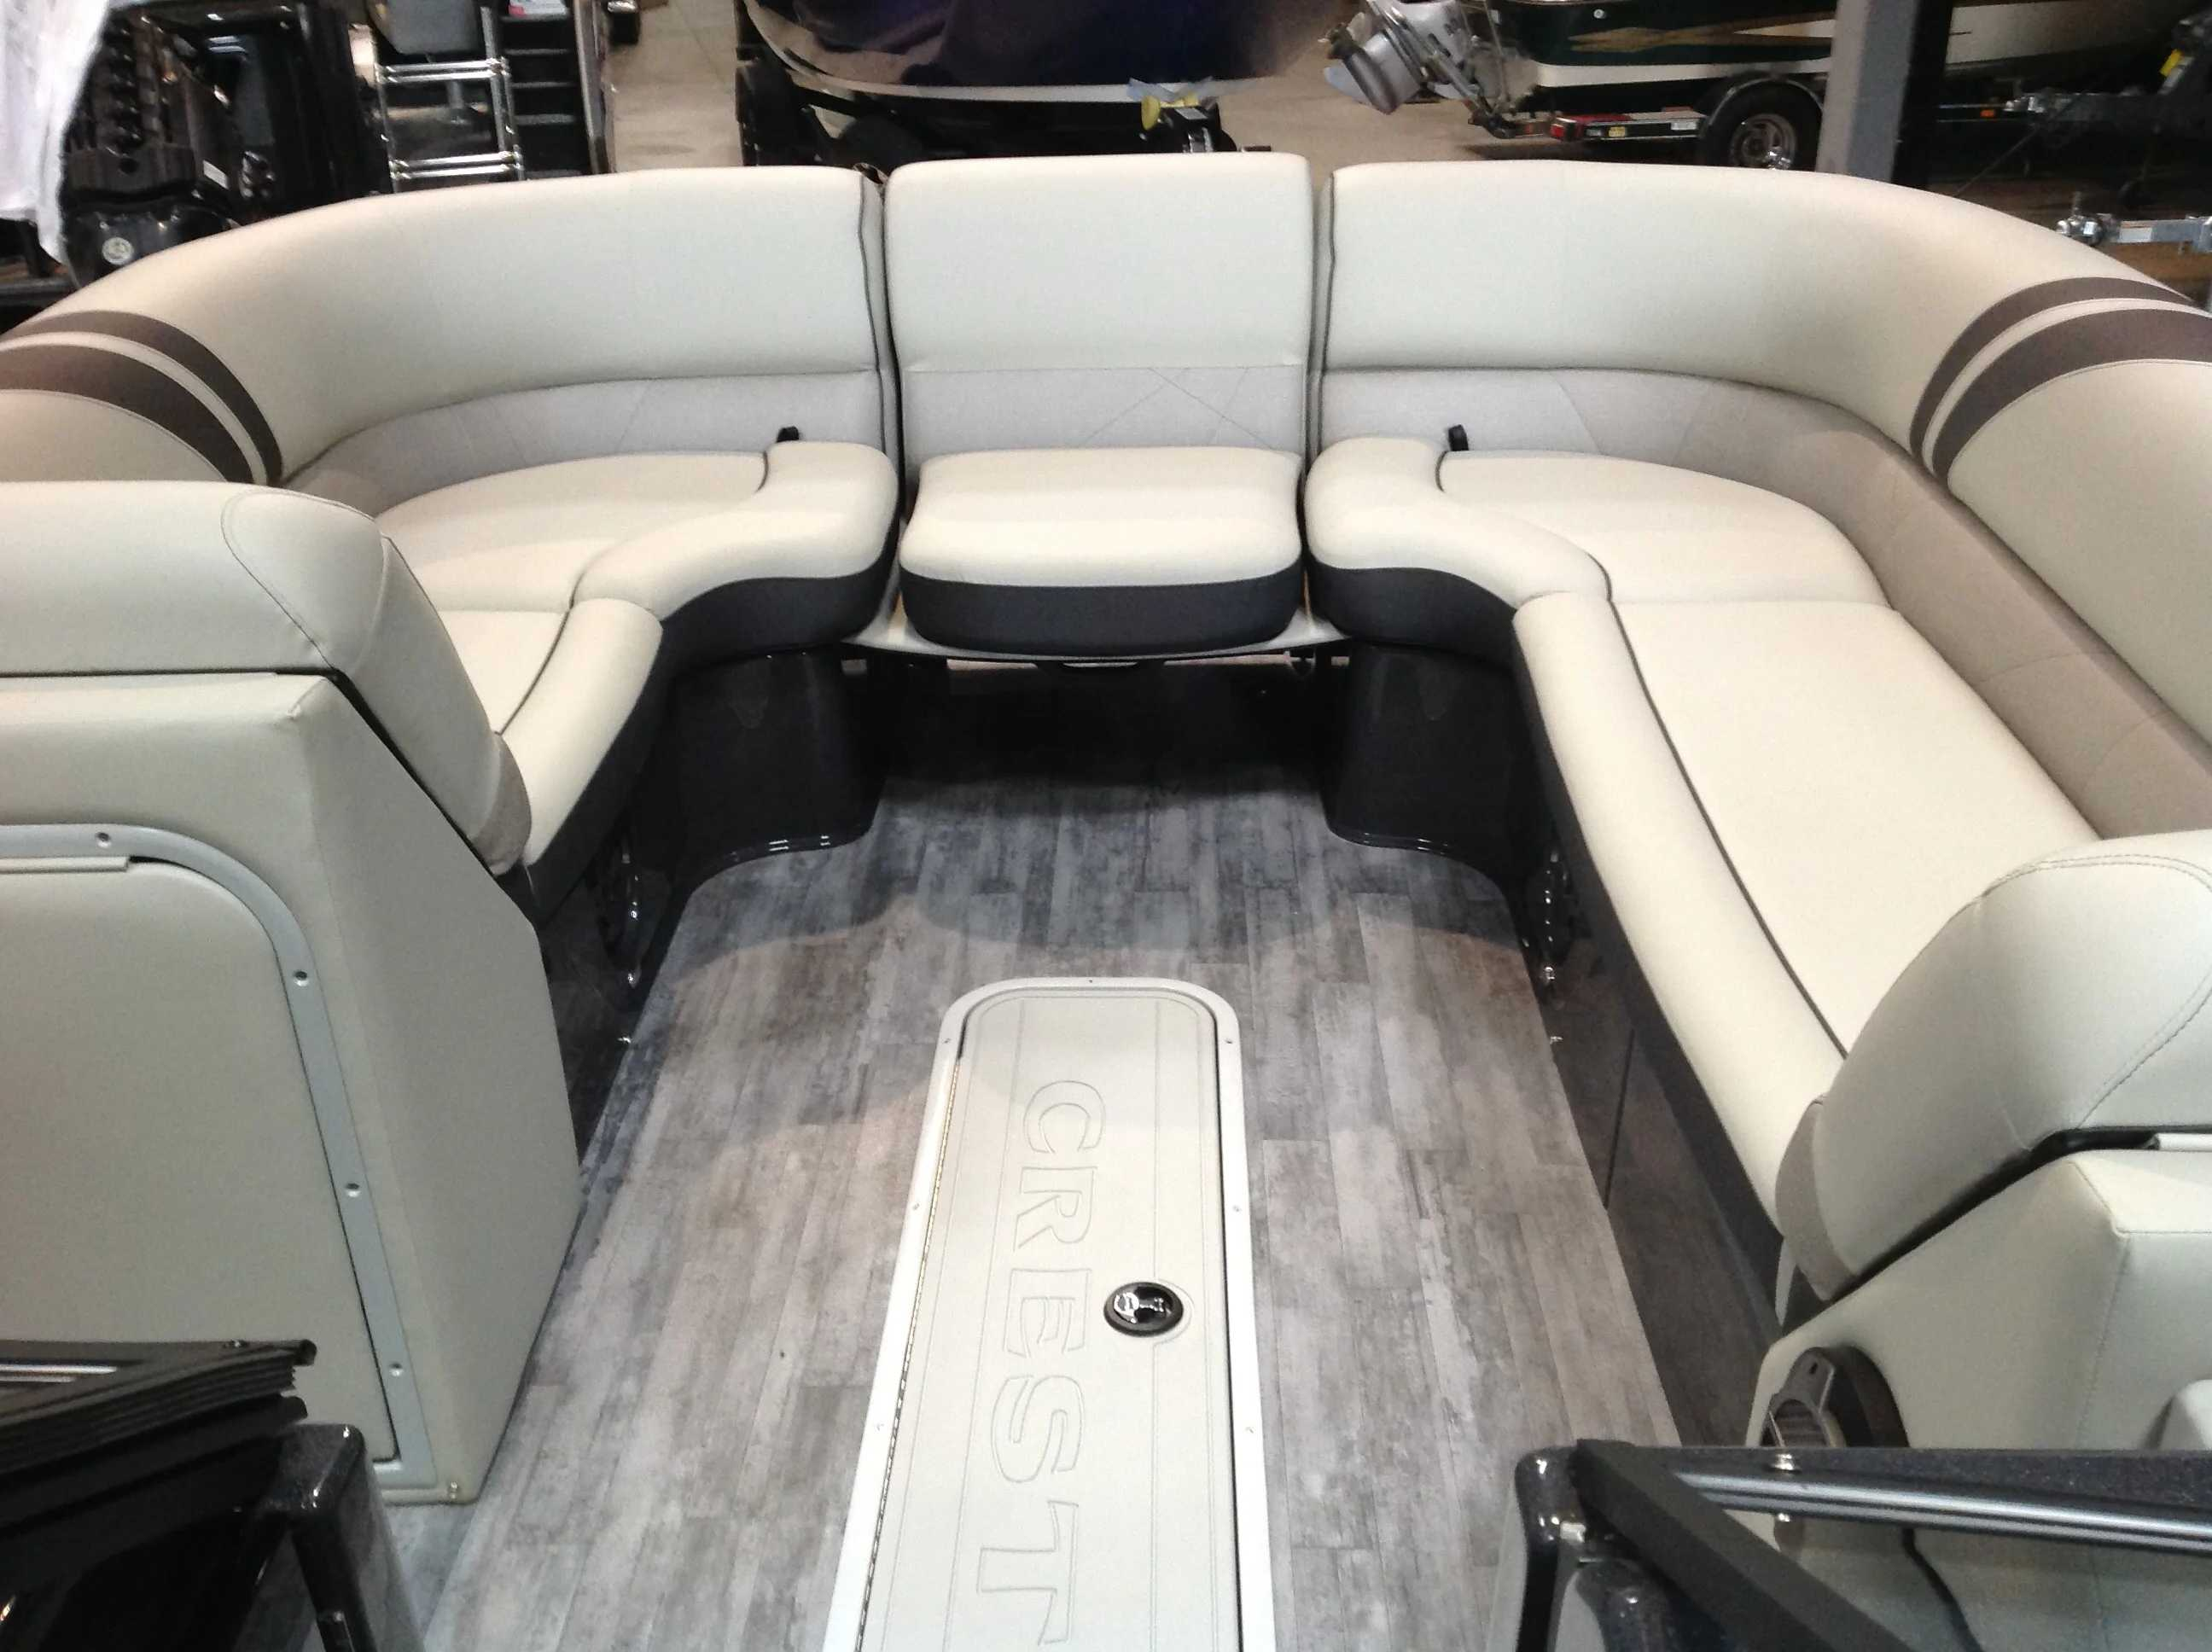 2021 Crest boat for sale, model of the boat is CONTINENTAL 250SLS & Image # 3 of 15